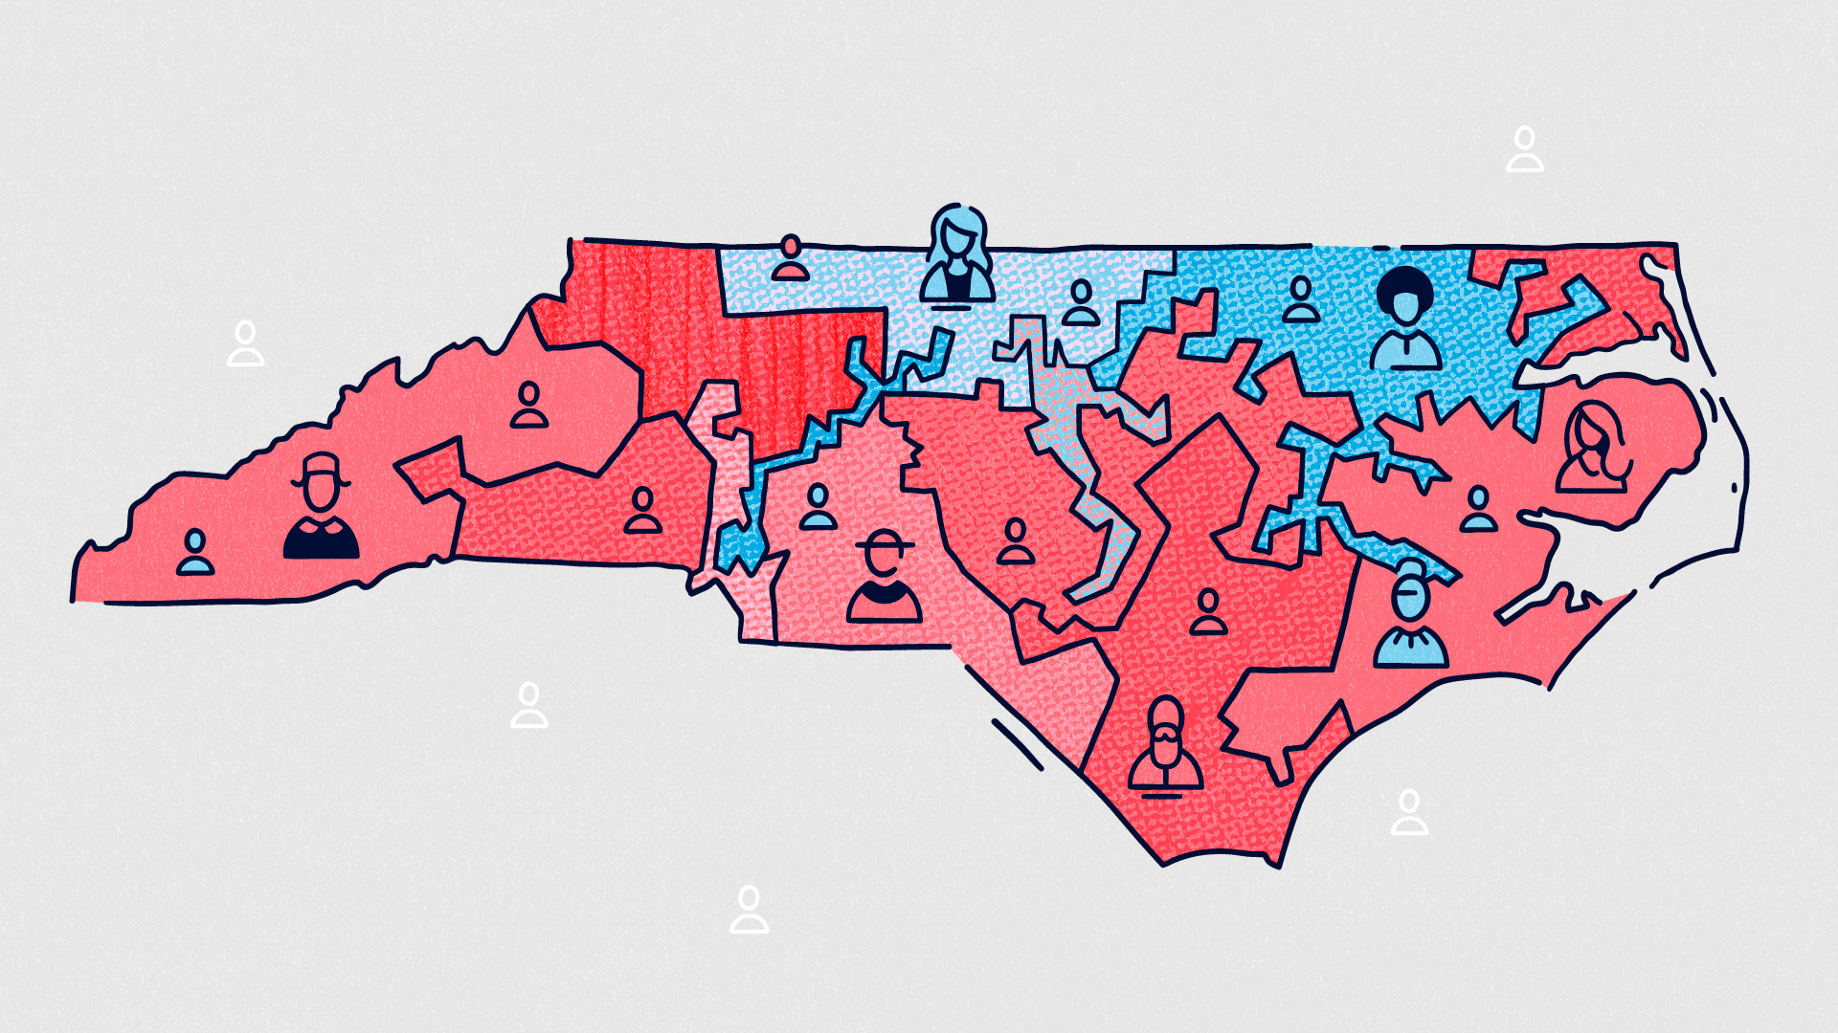 How Republicans Rigged the Map - Flippable on u.s. forest map, new jersey congressional delegation map, virginia congressional districts map, 113th congressional district map, us congressional leadership, us place map, us occupation map, new michigan congressional districts map, texas railroad districts map, us town map, us congressional seats, court of appeals federal circuit map, mn voting districts map, california congressional districts 2012 map, us metro area map, us household income map, us diocese map, new texas congressional districts map, us division map, us republic map,